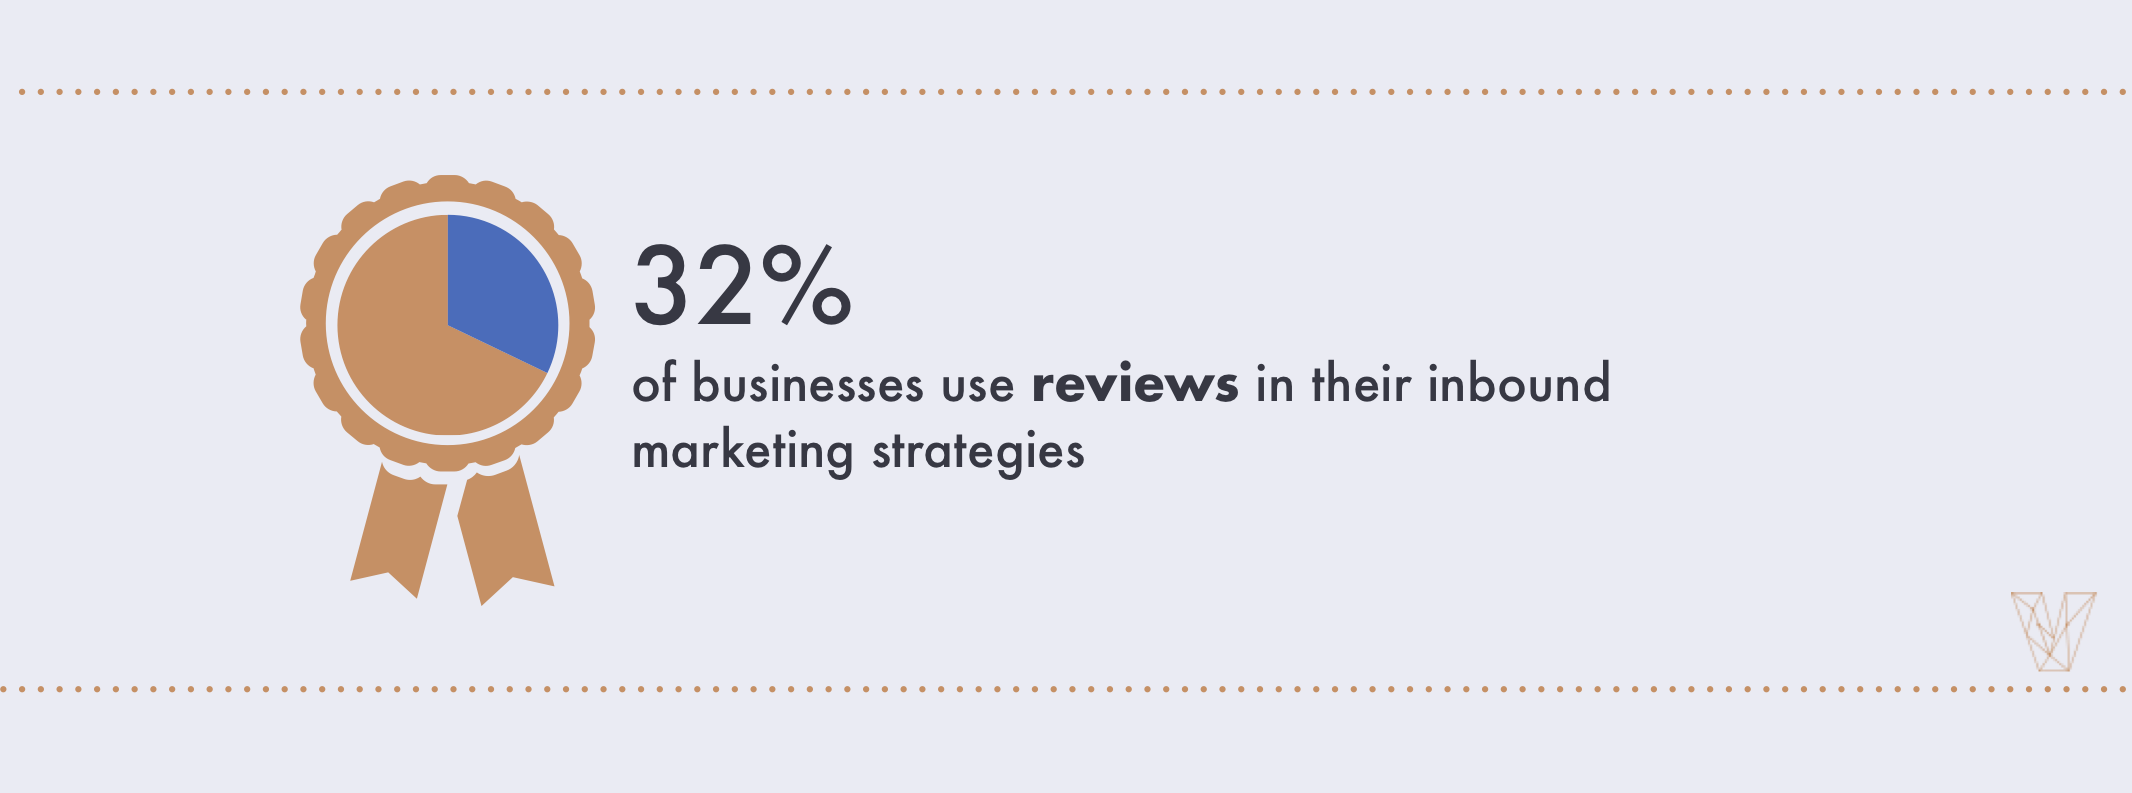 32% of businesses use reviews in their inbound marketing strategies